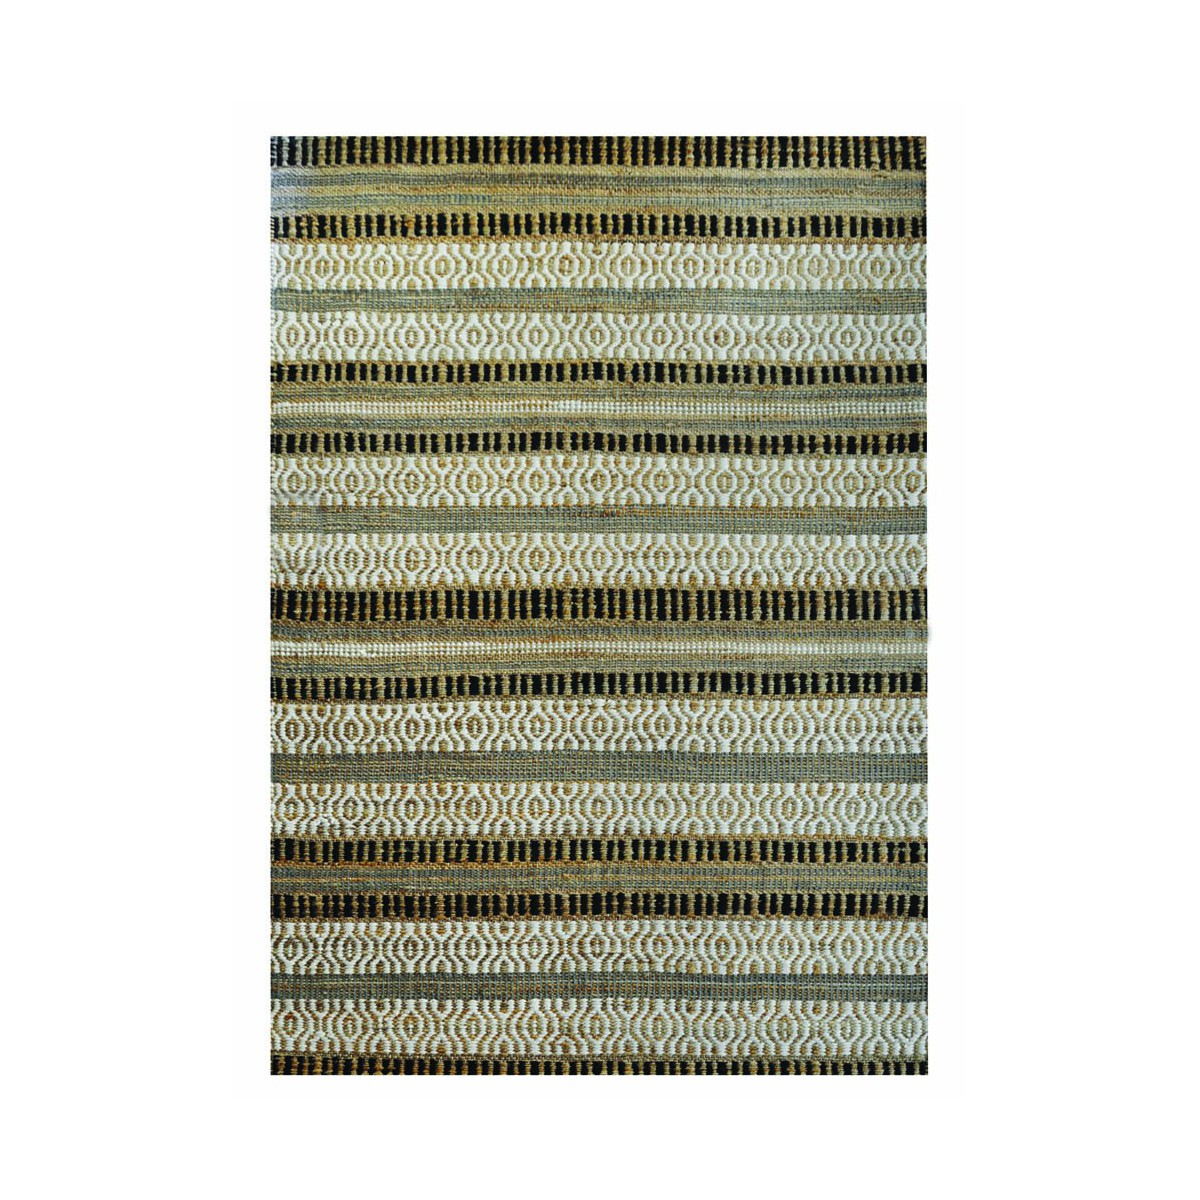 tapis tiss main gris ou bleu yukon par the rug republic. Black Bedroom Furniture Sets. Home Design Ideas